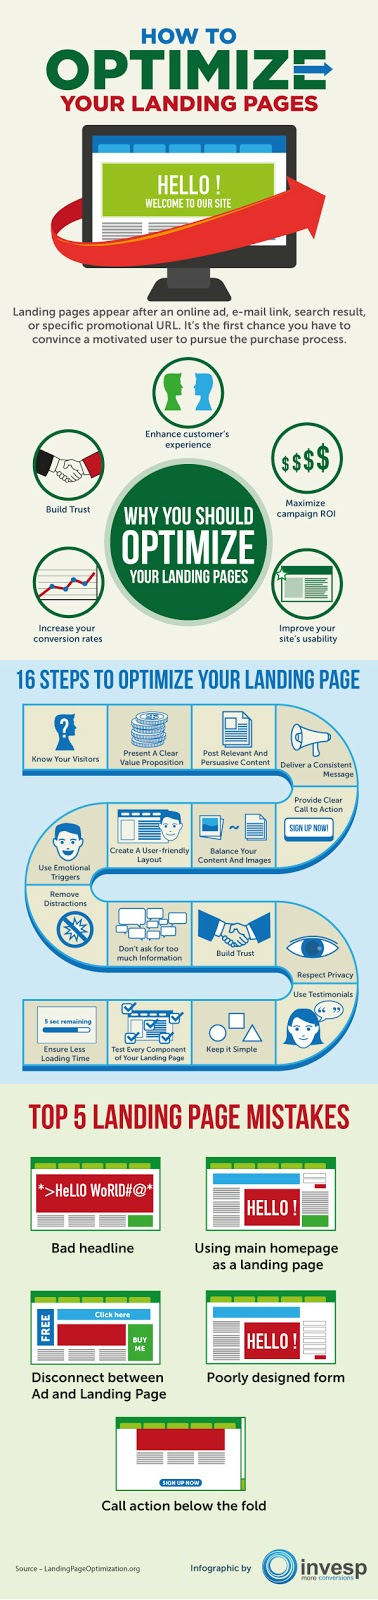 How to Create Optimized Landing Pages Infographic